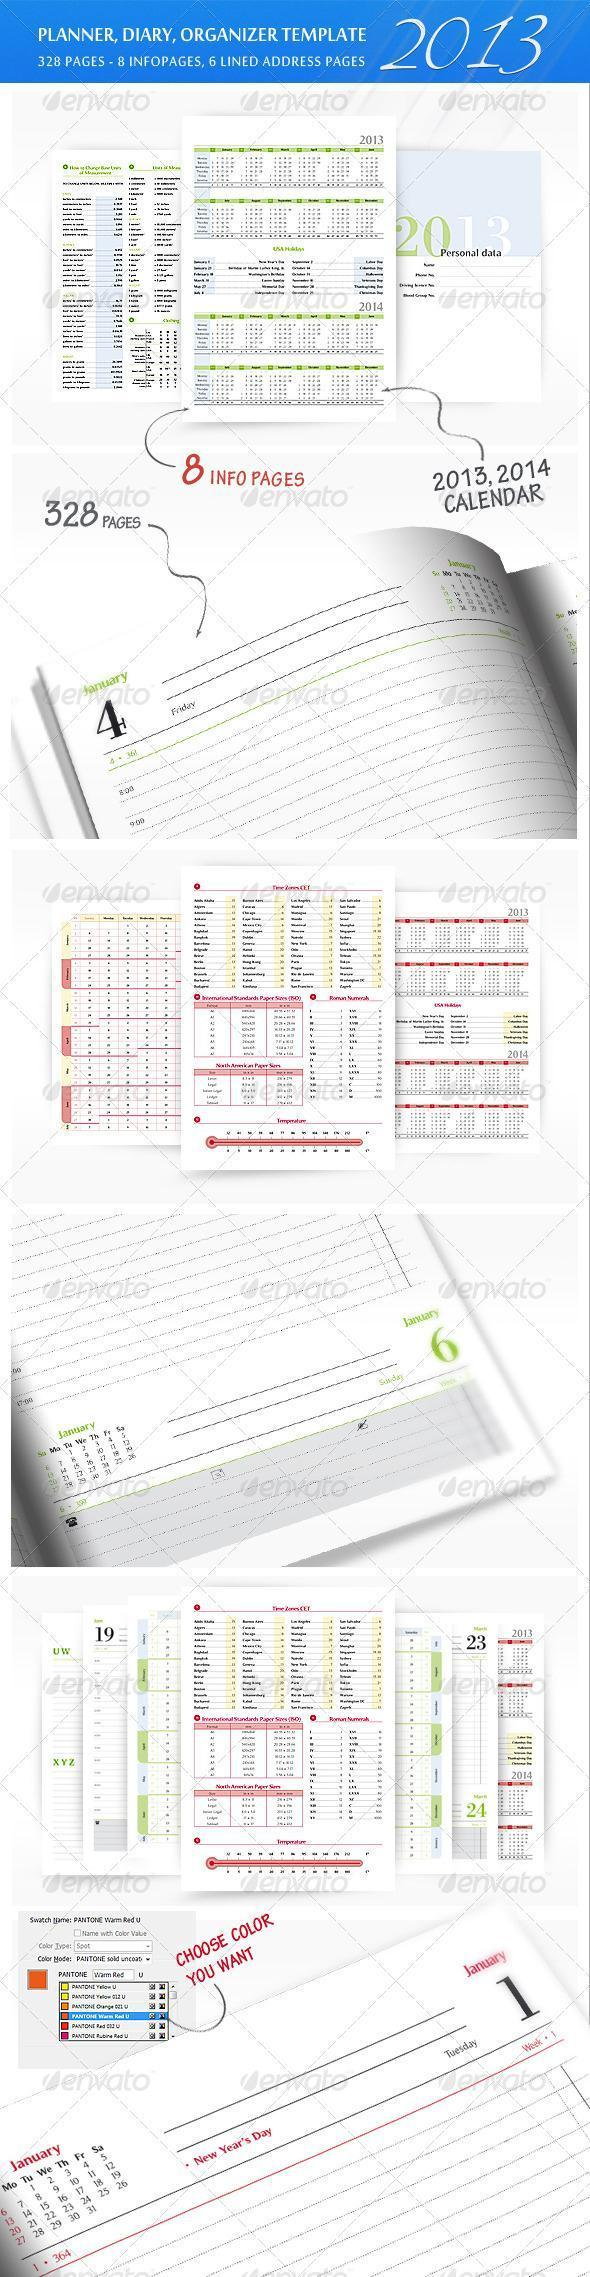 Printable 2013 Planner for Company Prints